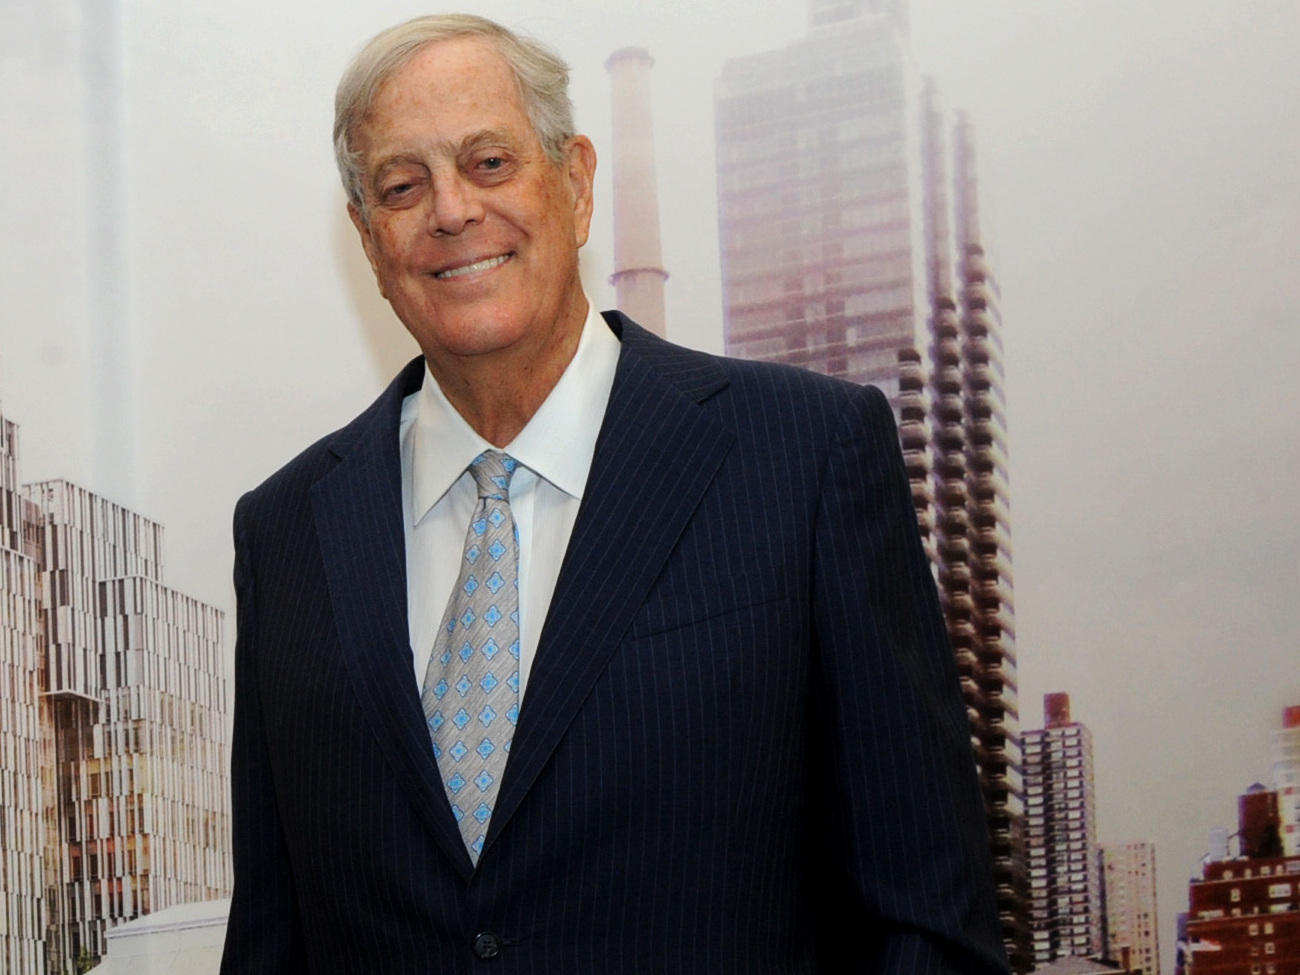 Charles David Koch We Know Who You Are >> David Koch Dies Conservative Billionaire Helped Reshape U S